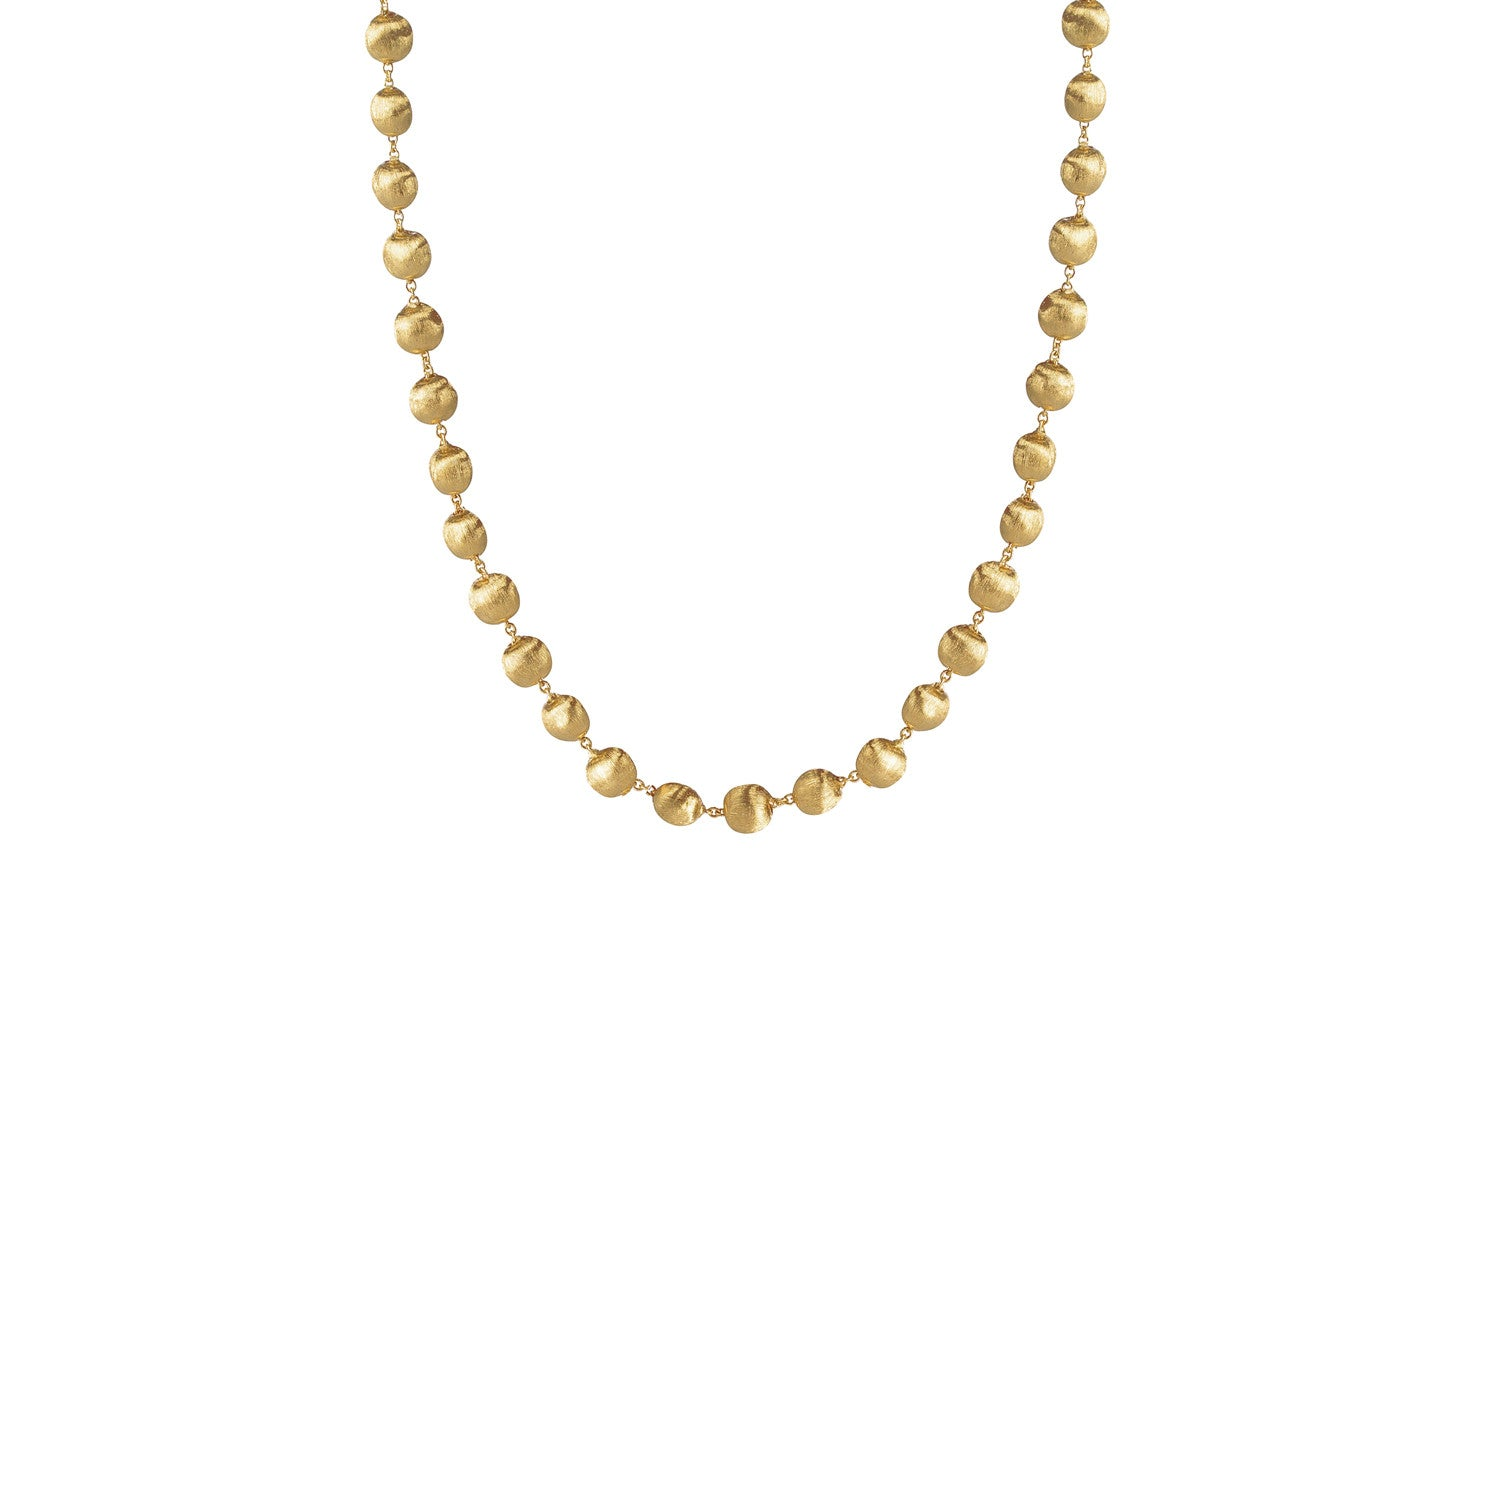 Africa Necklace in 18k Yellow Gold with Small Sized Balls - 41cm - Orsini Jewellers NZ